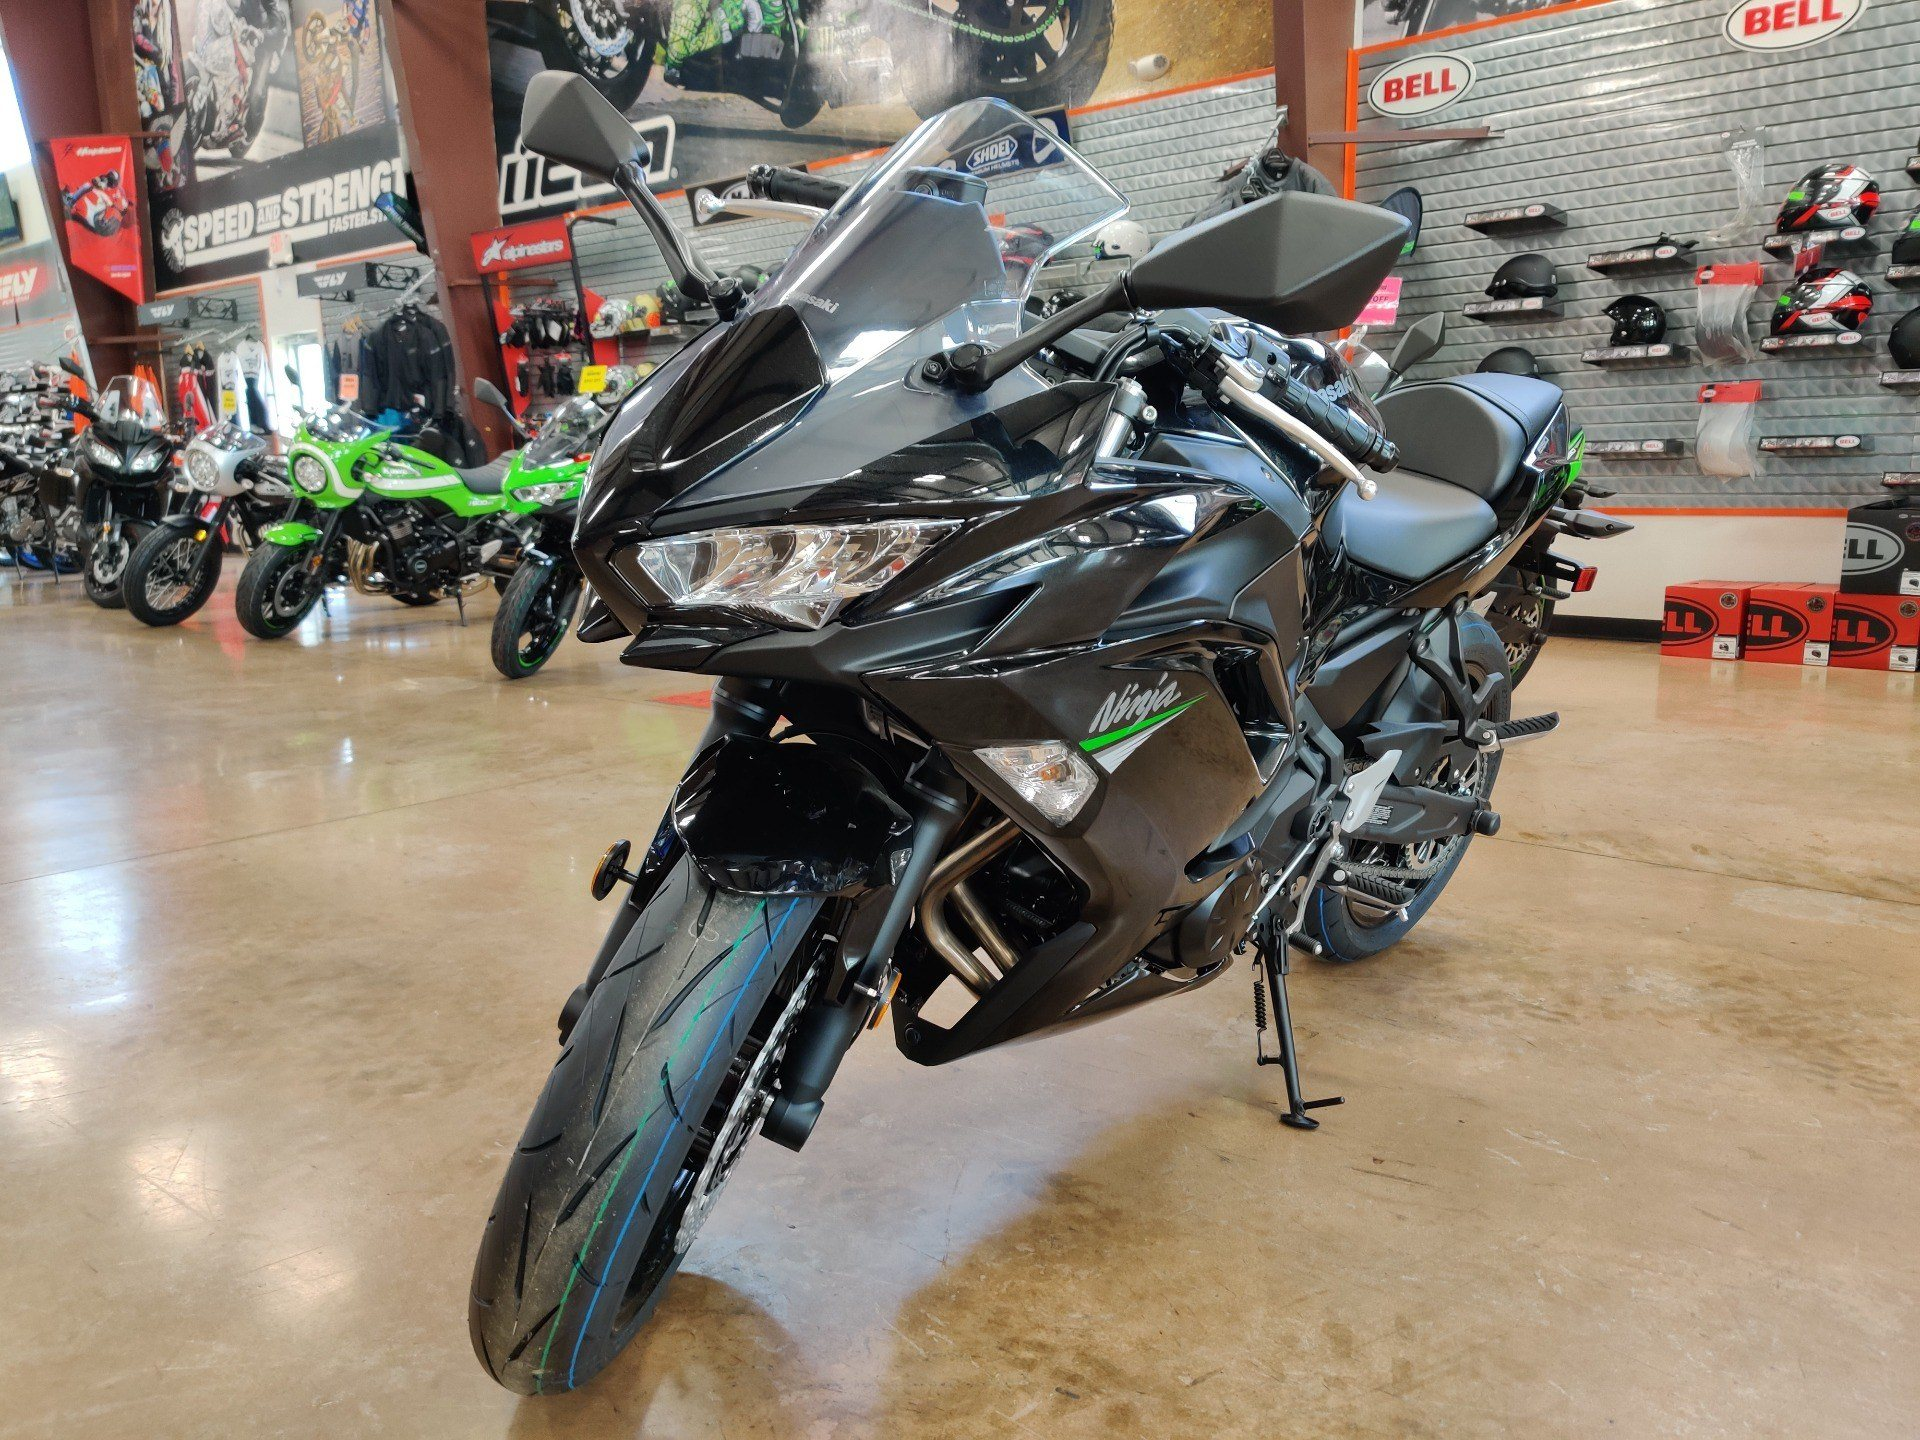 2020 Kawasaki Ninja 650 ABS in Evansville, Indiana - Photo 2